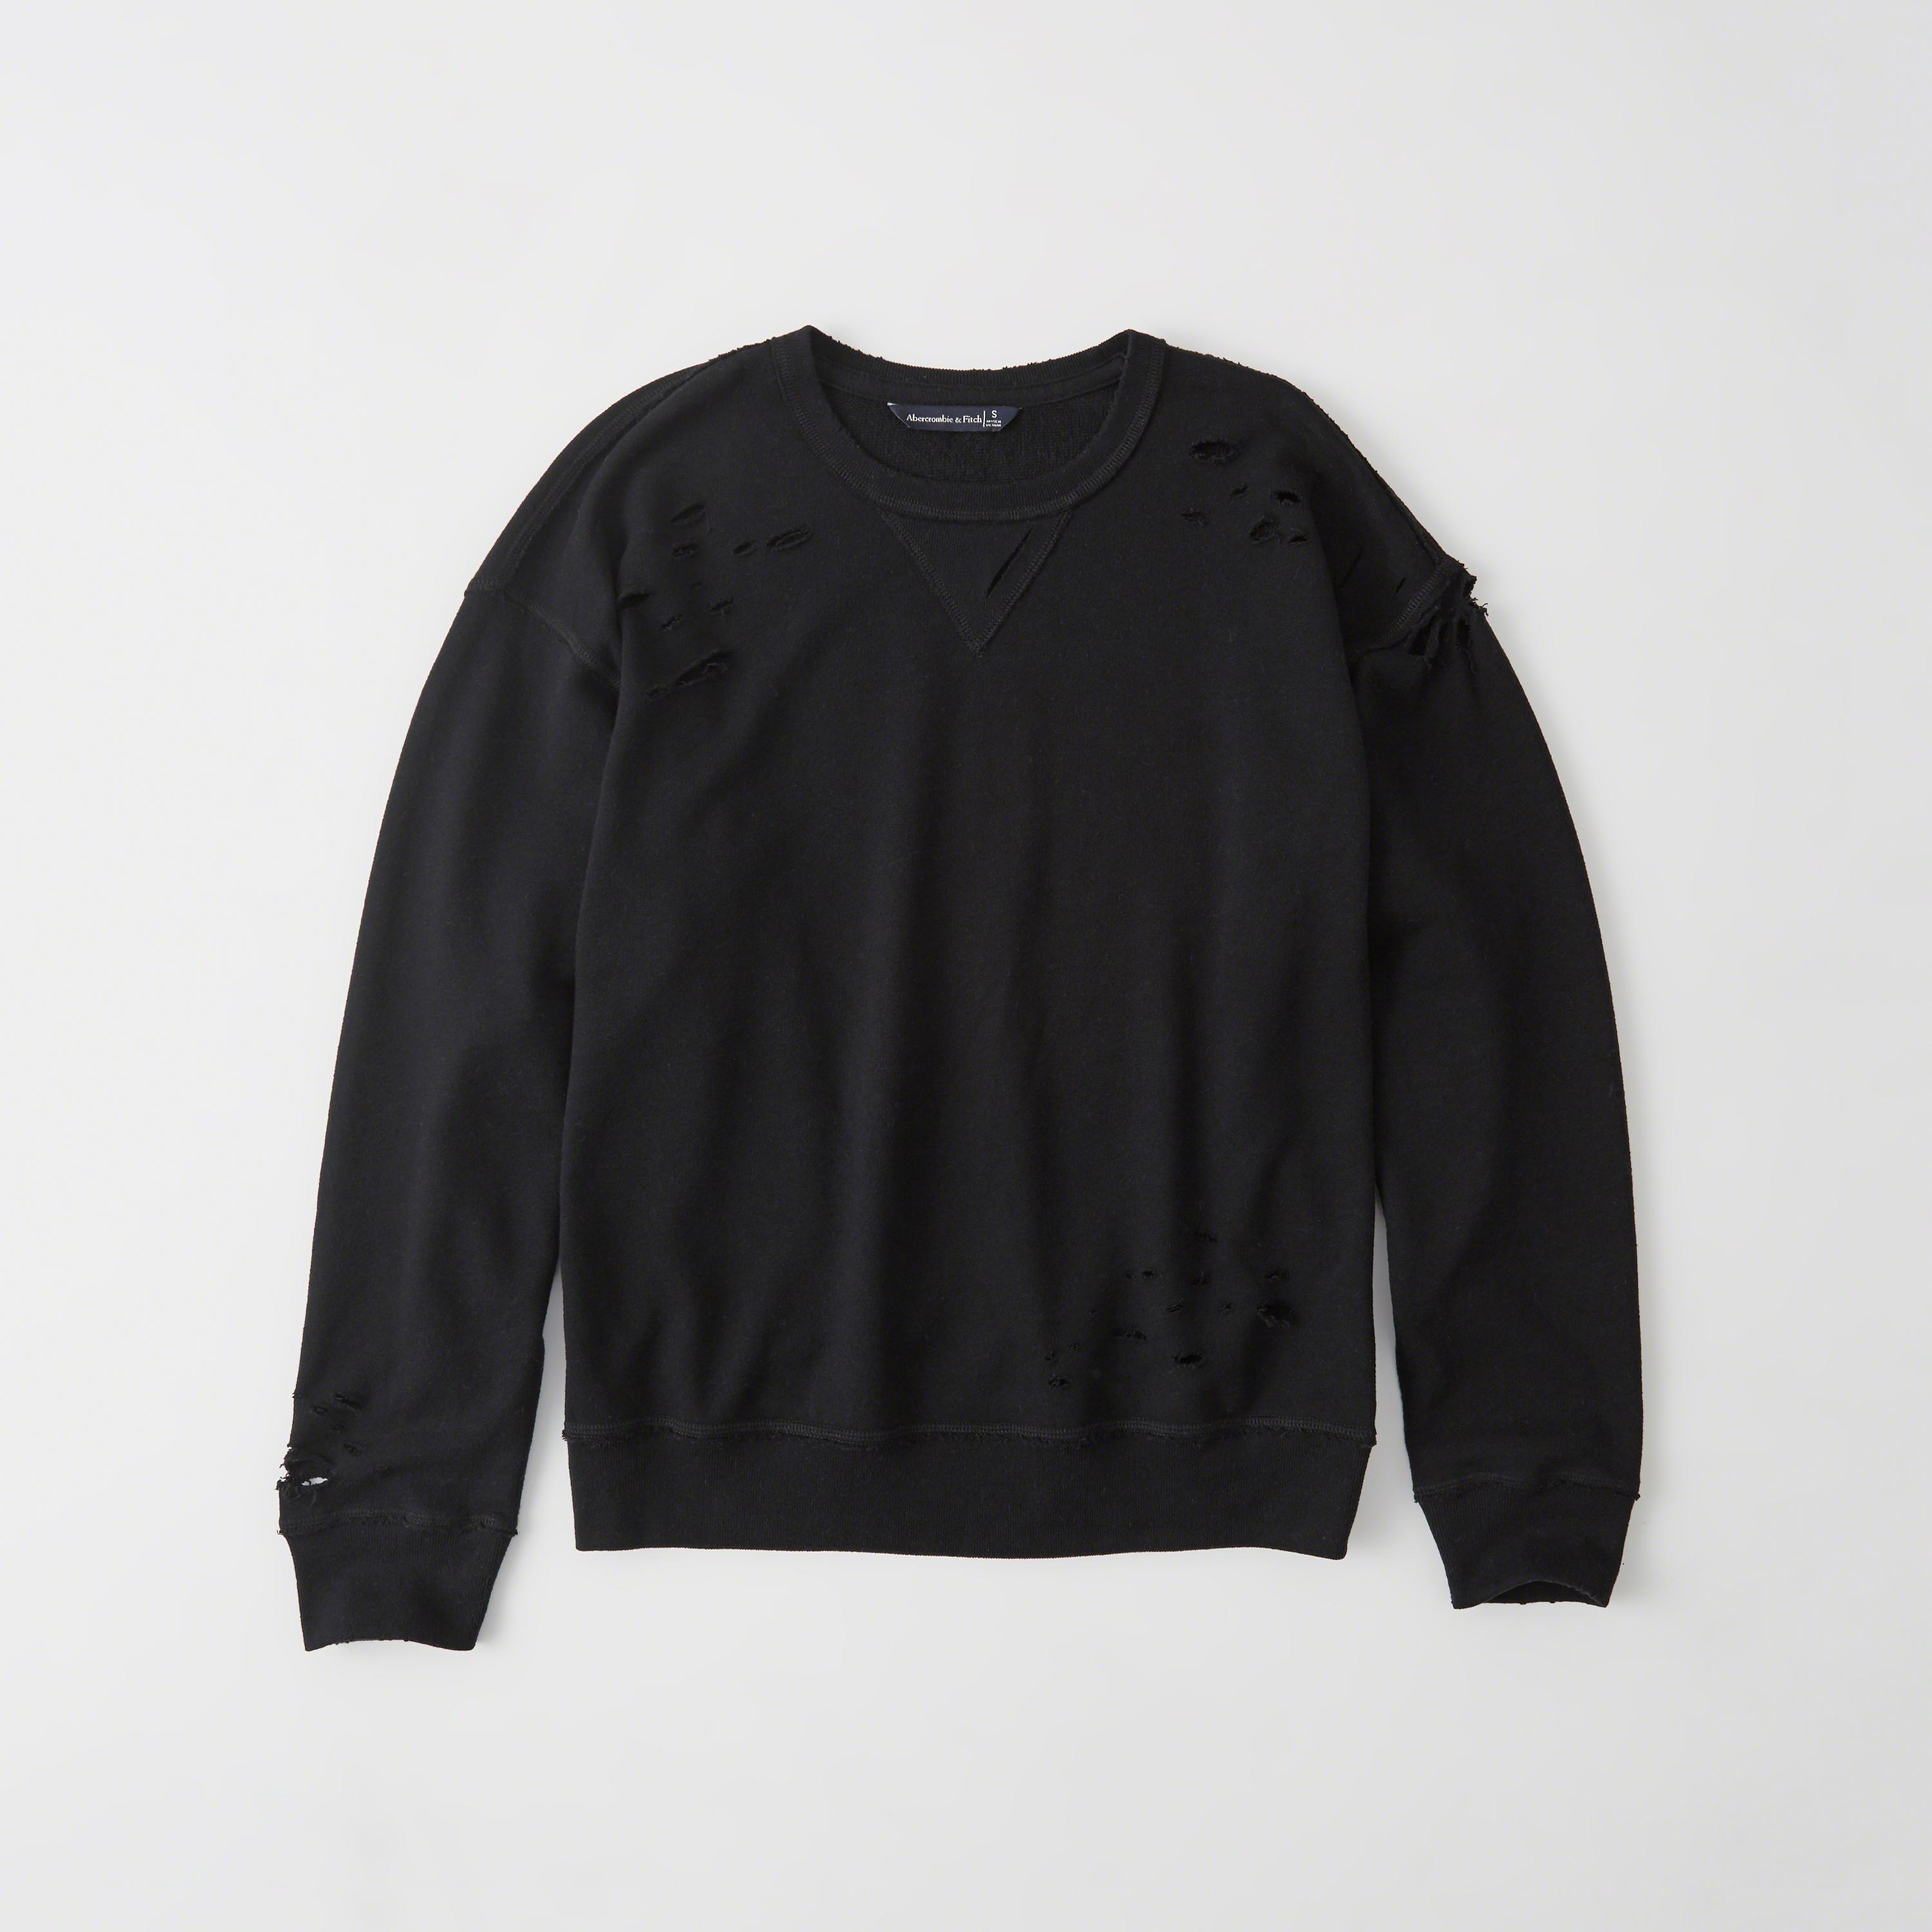 Abercrombie & Fitch Ripped Sweatshirt In Black